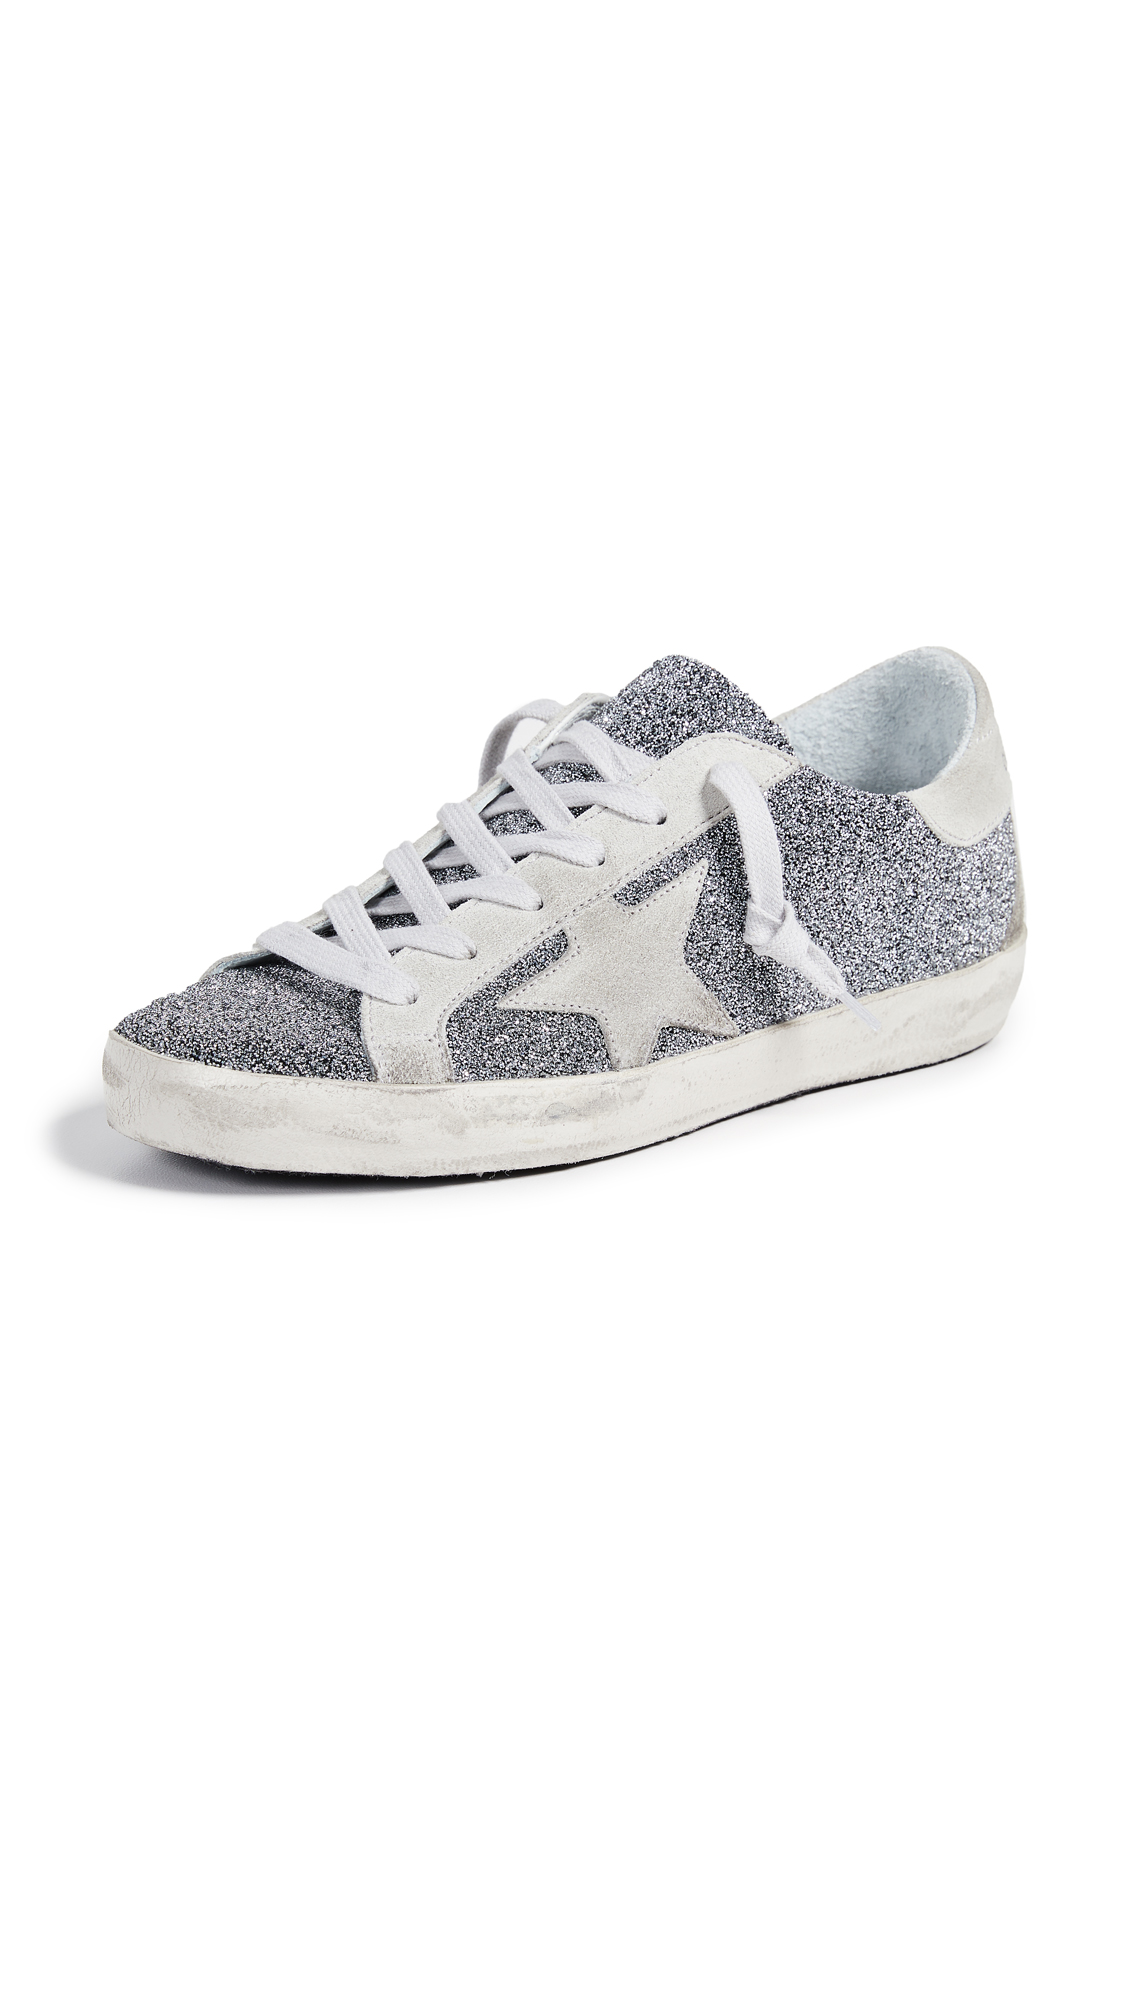 Golden Goose Superstar Sneakers - Crystal Galaxy